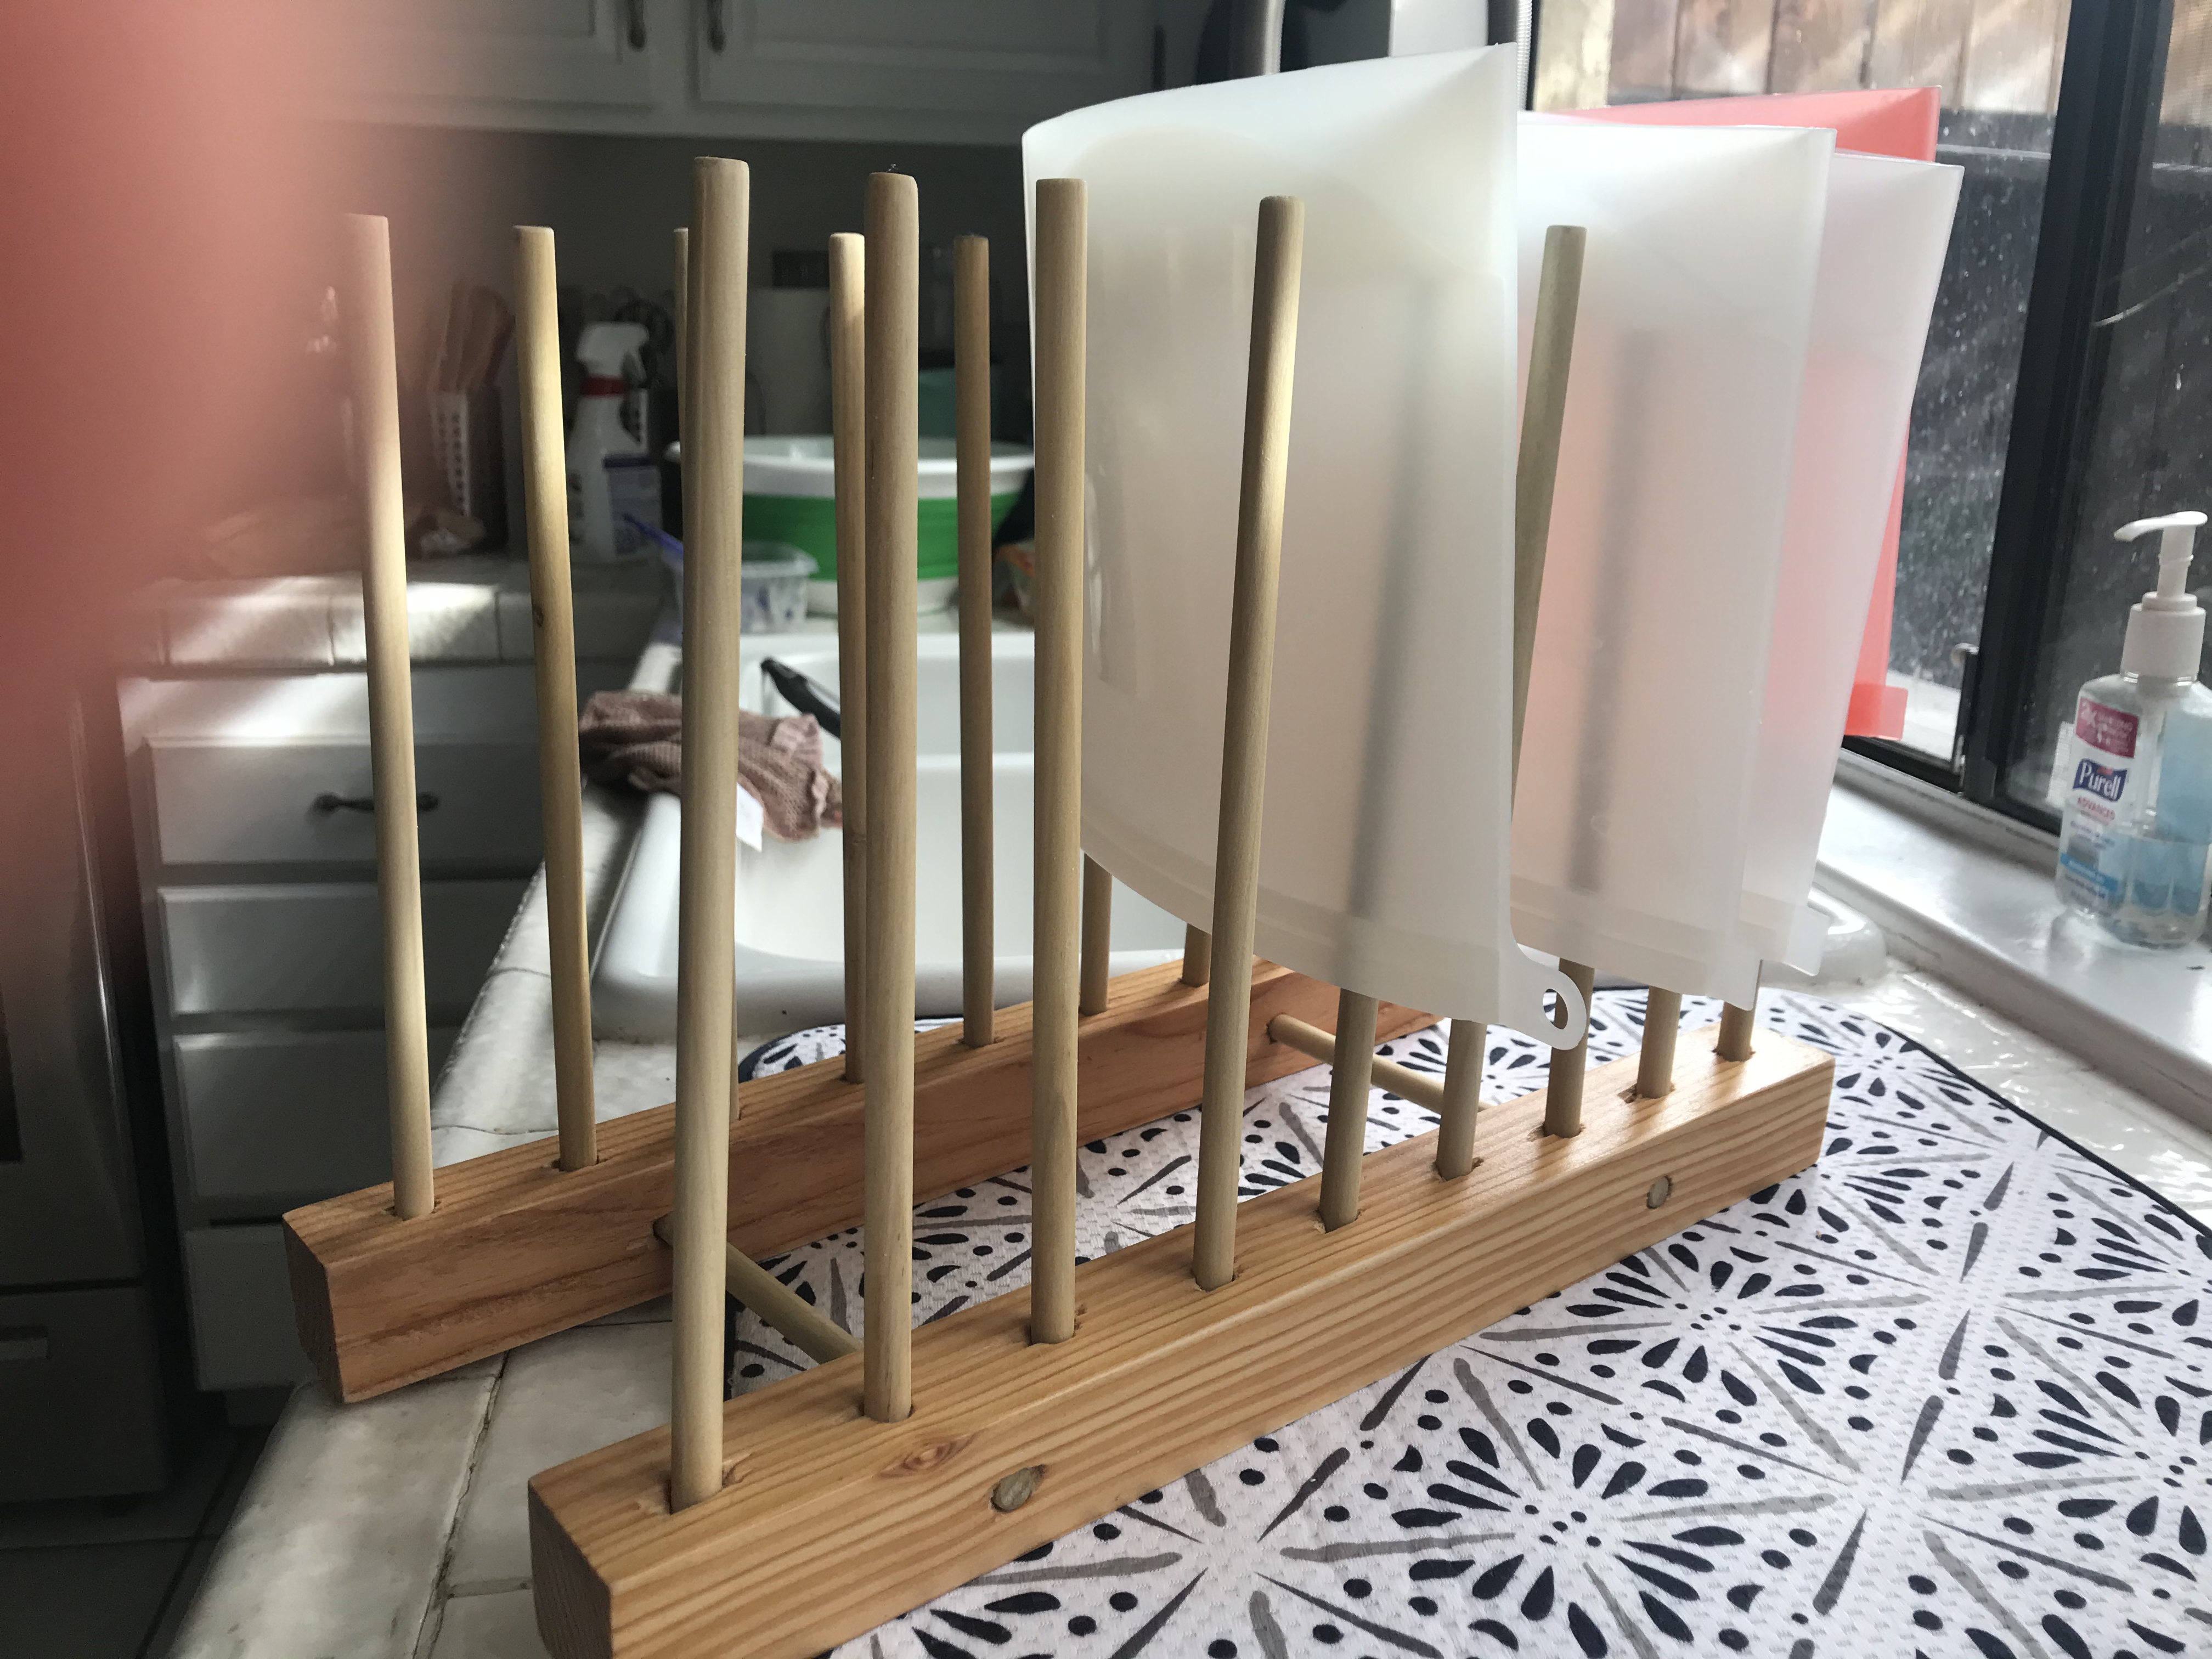 drying rack holding plastic bags up on spindles